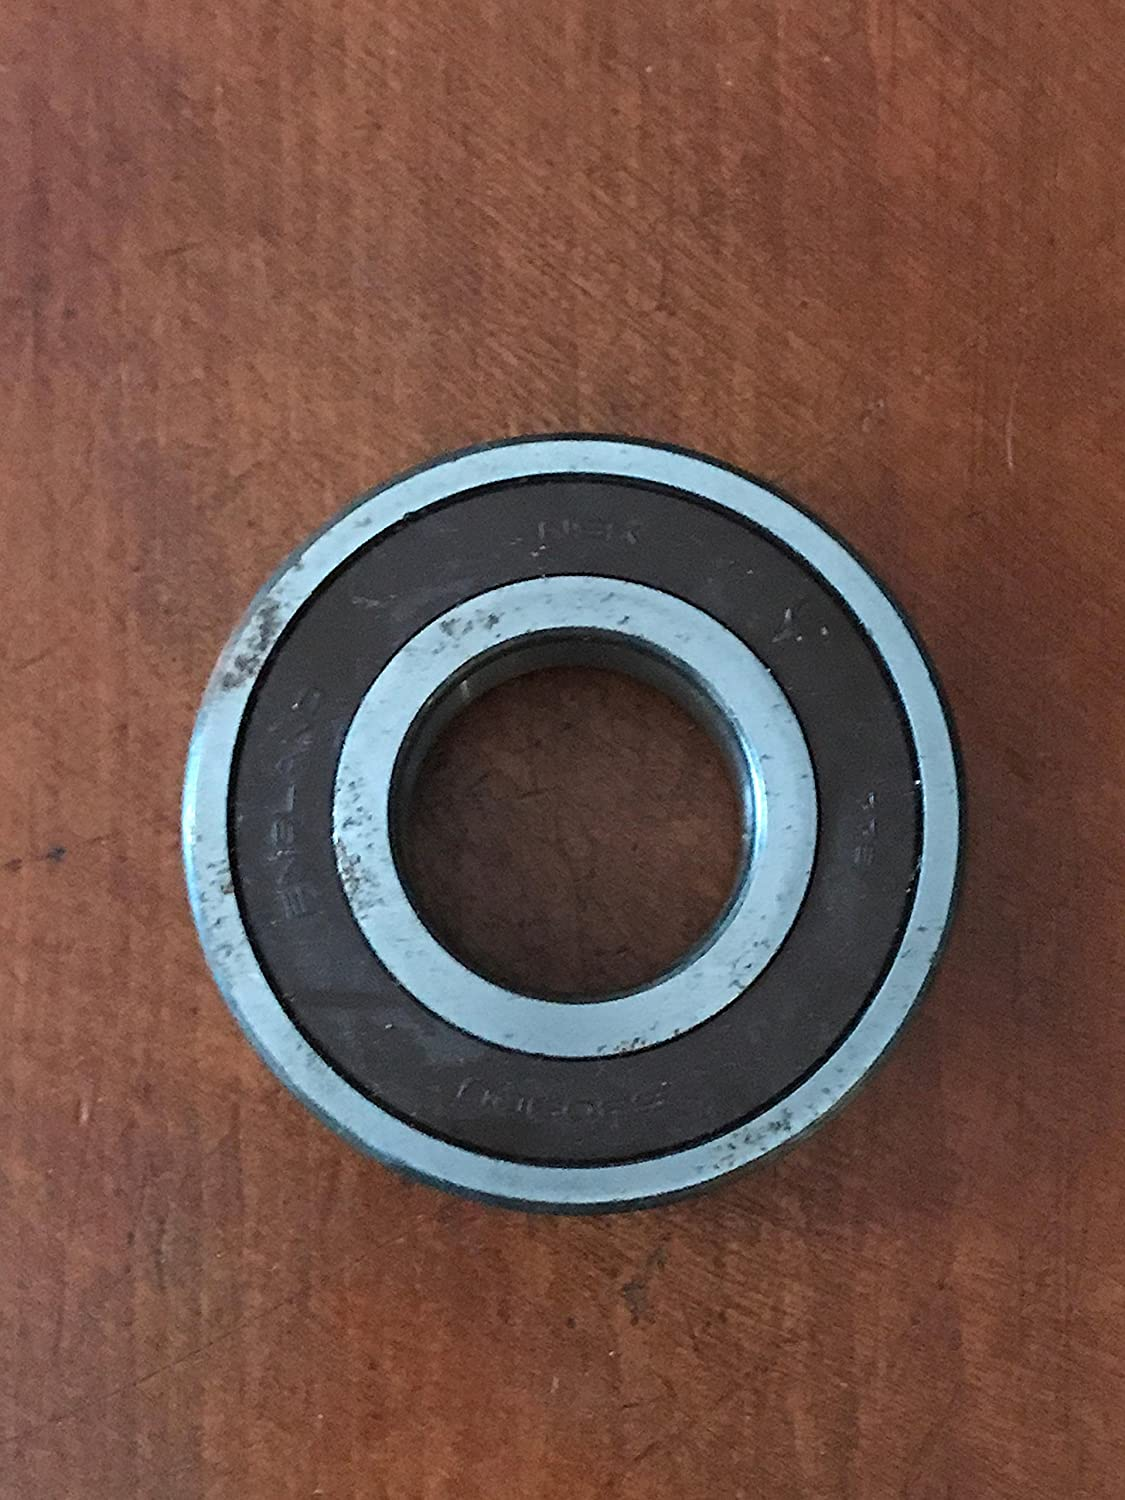 Bearing #1201005 for Firbimatic, Union, Realstar dry cleaning machines